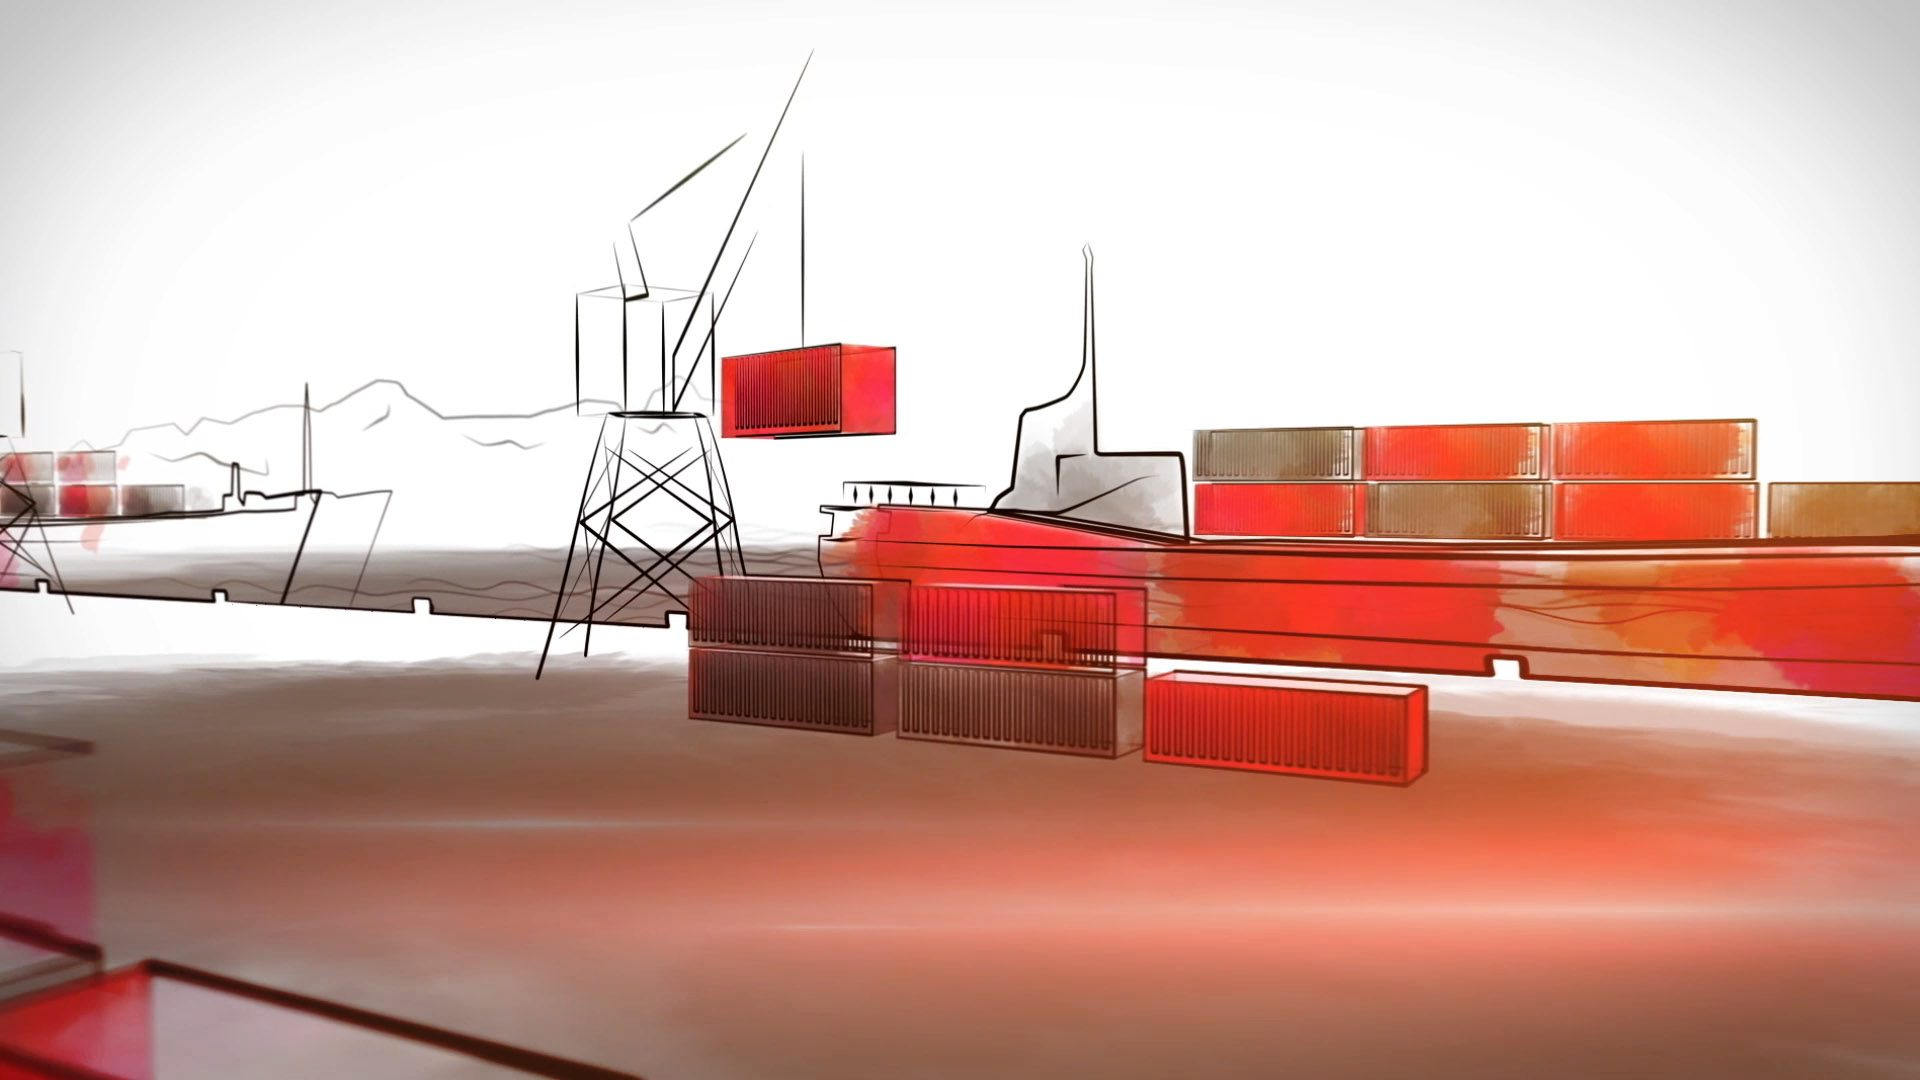 hsbc motion graphics studio